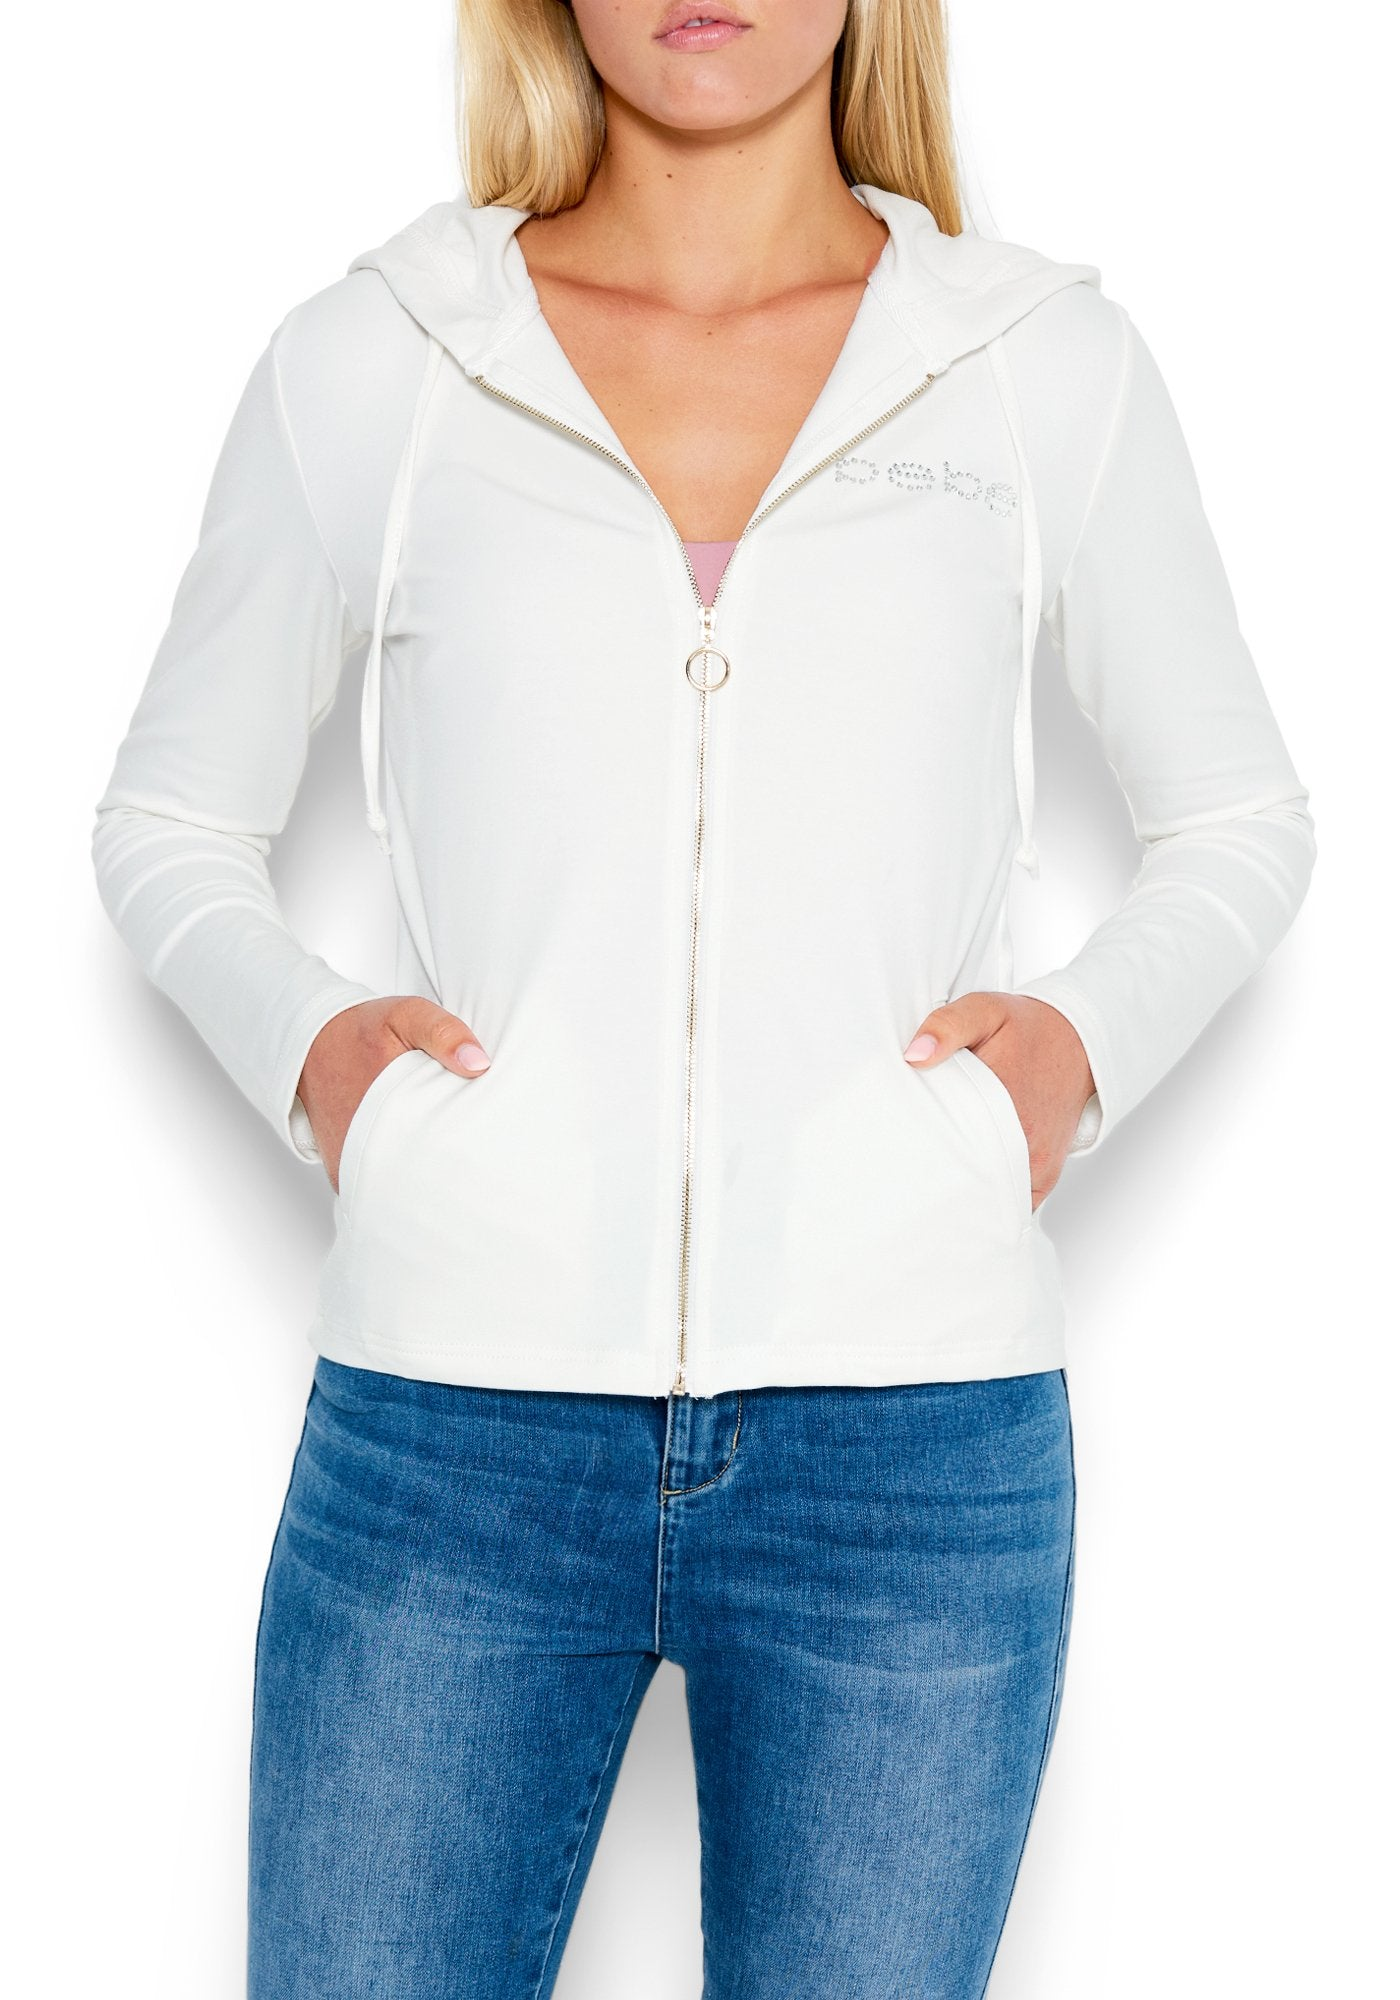 Image of Women's Bebe Logo French Terry Jacket, Size Small in MARSHMALLOW Cotton/Spandex